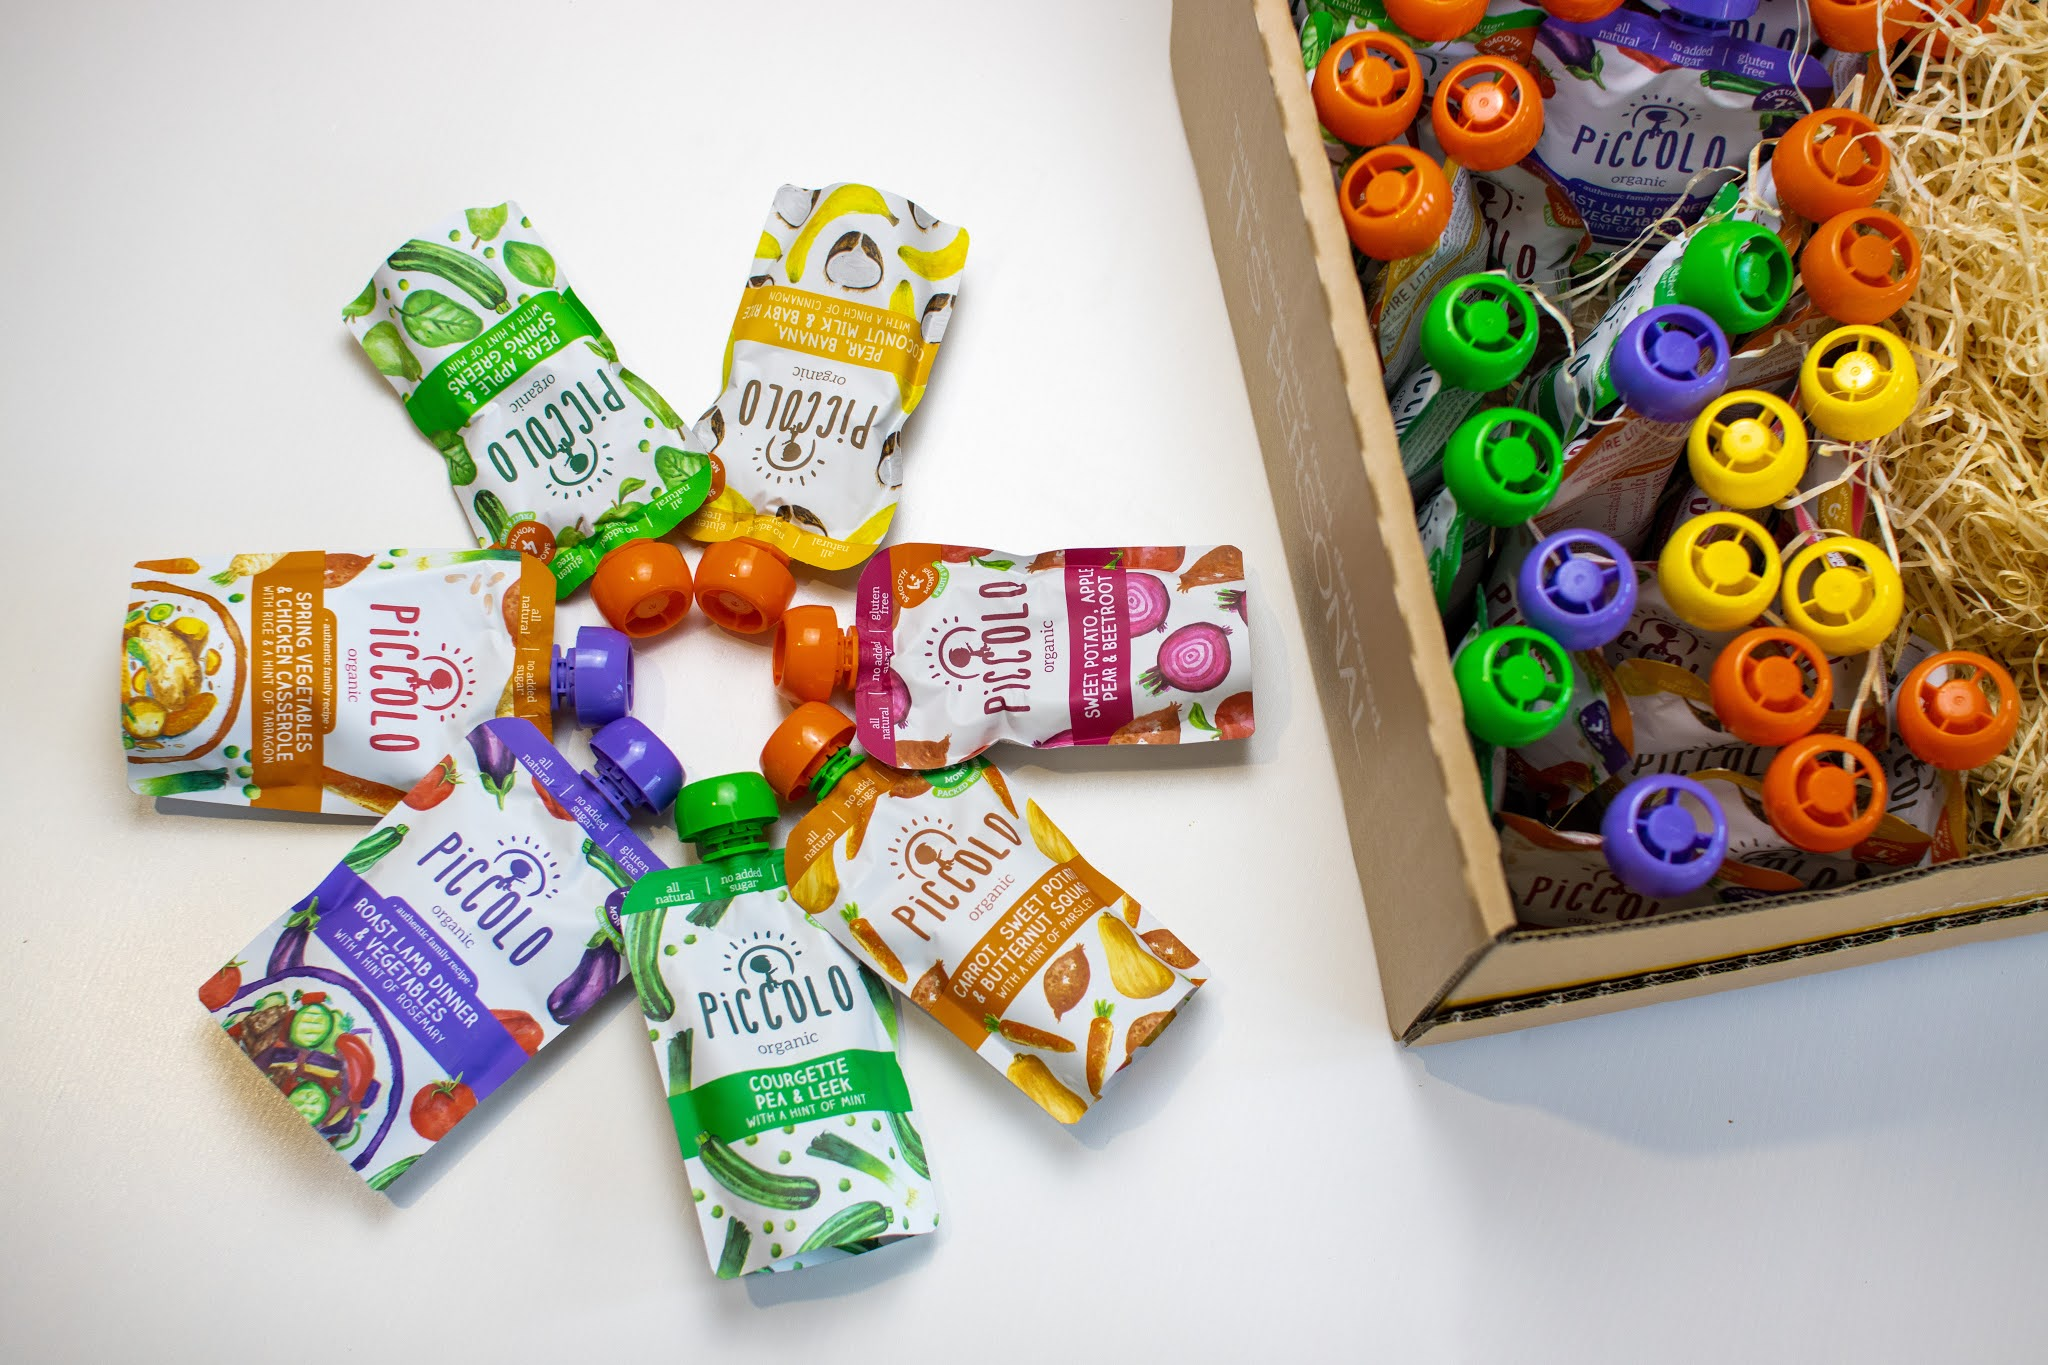 6 baby food pouches arranged in a flower shape next to a delivery box full of baby food from piccolo subscription service